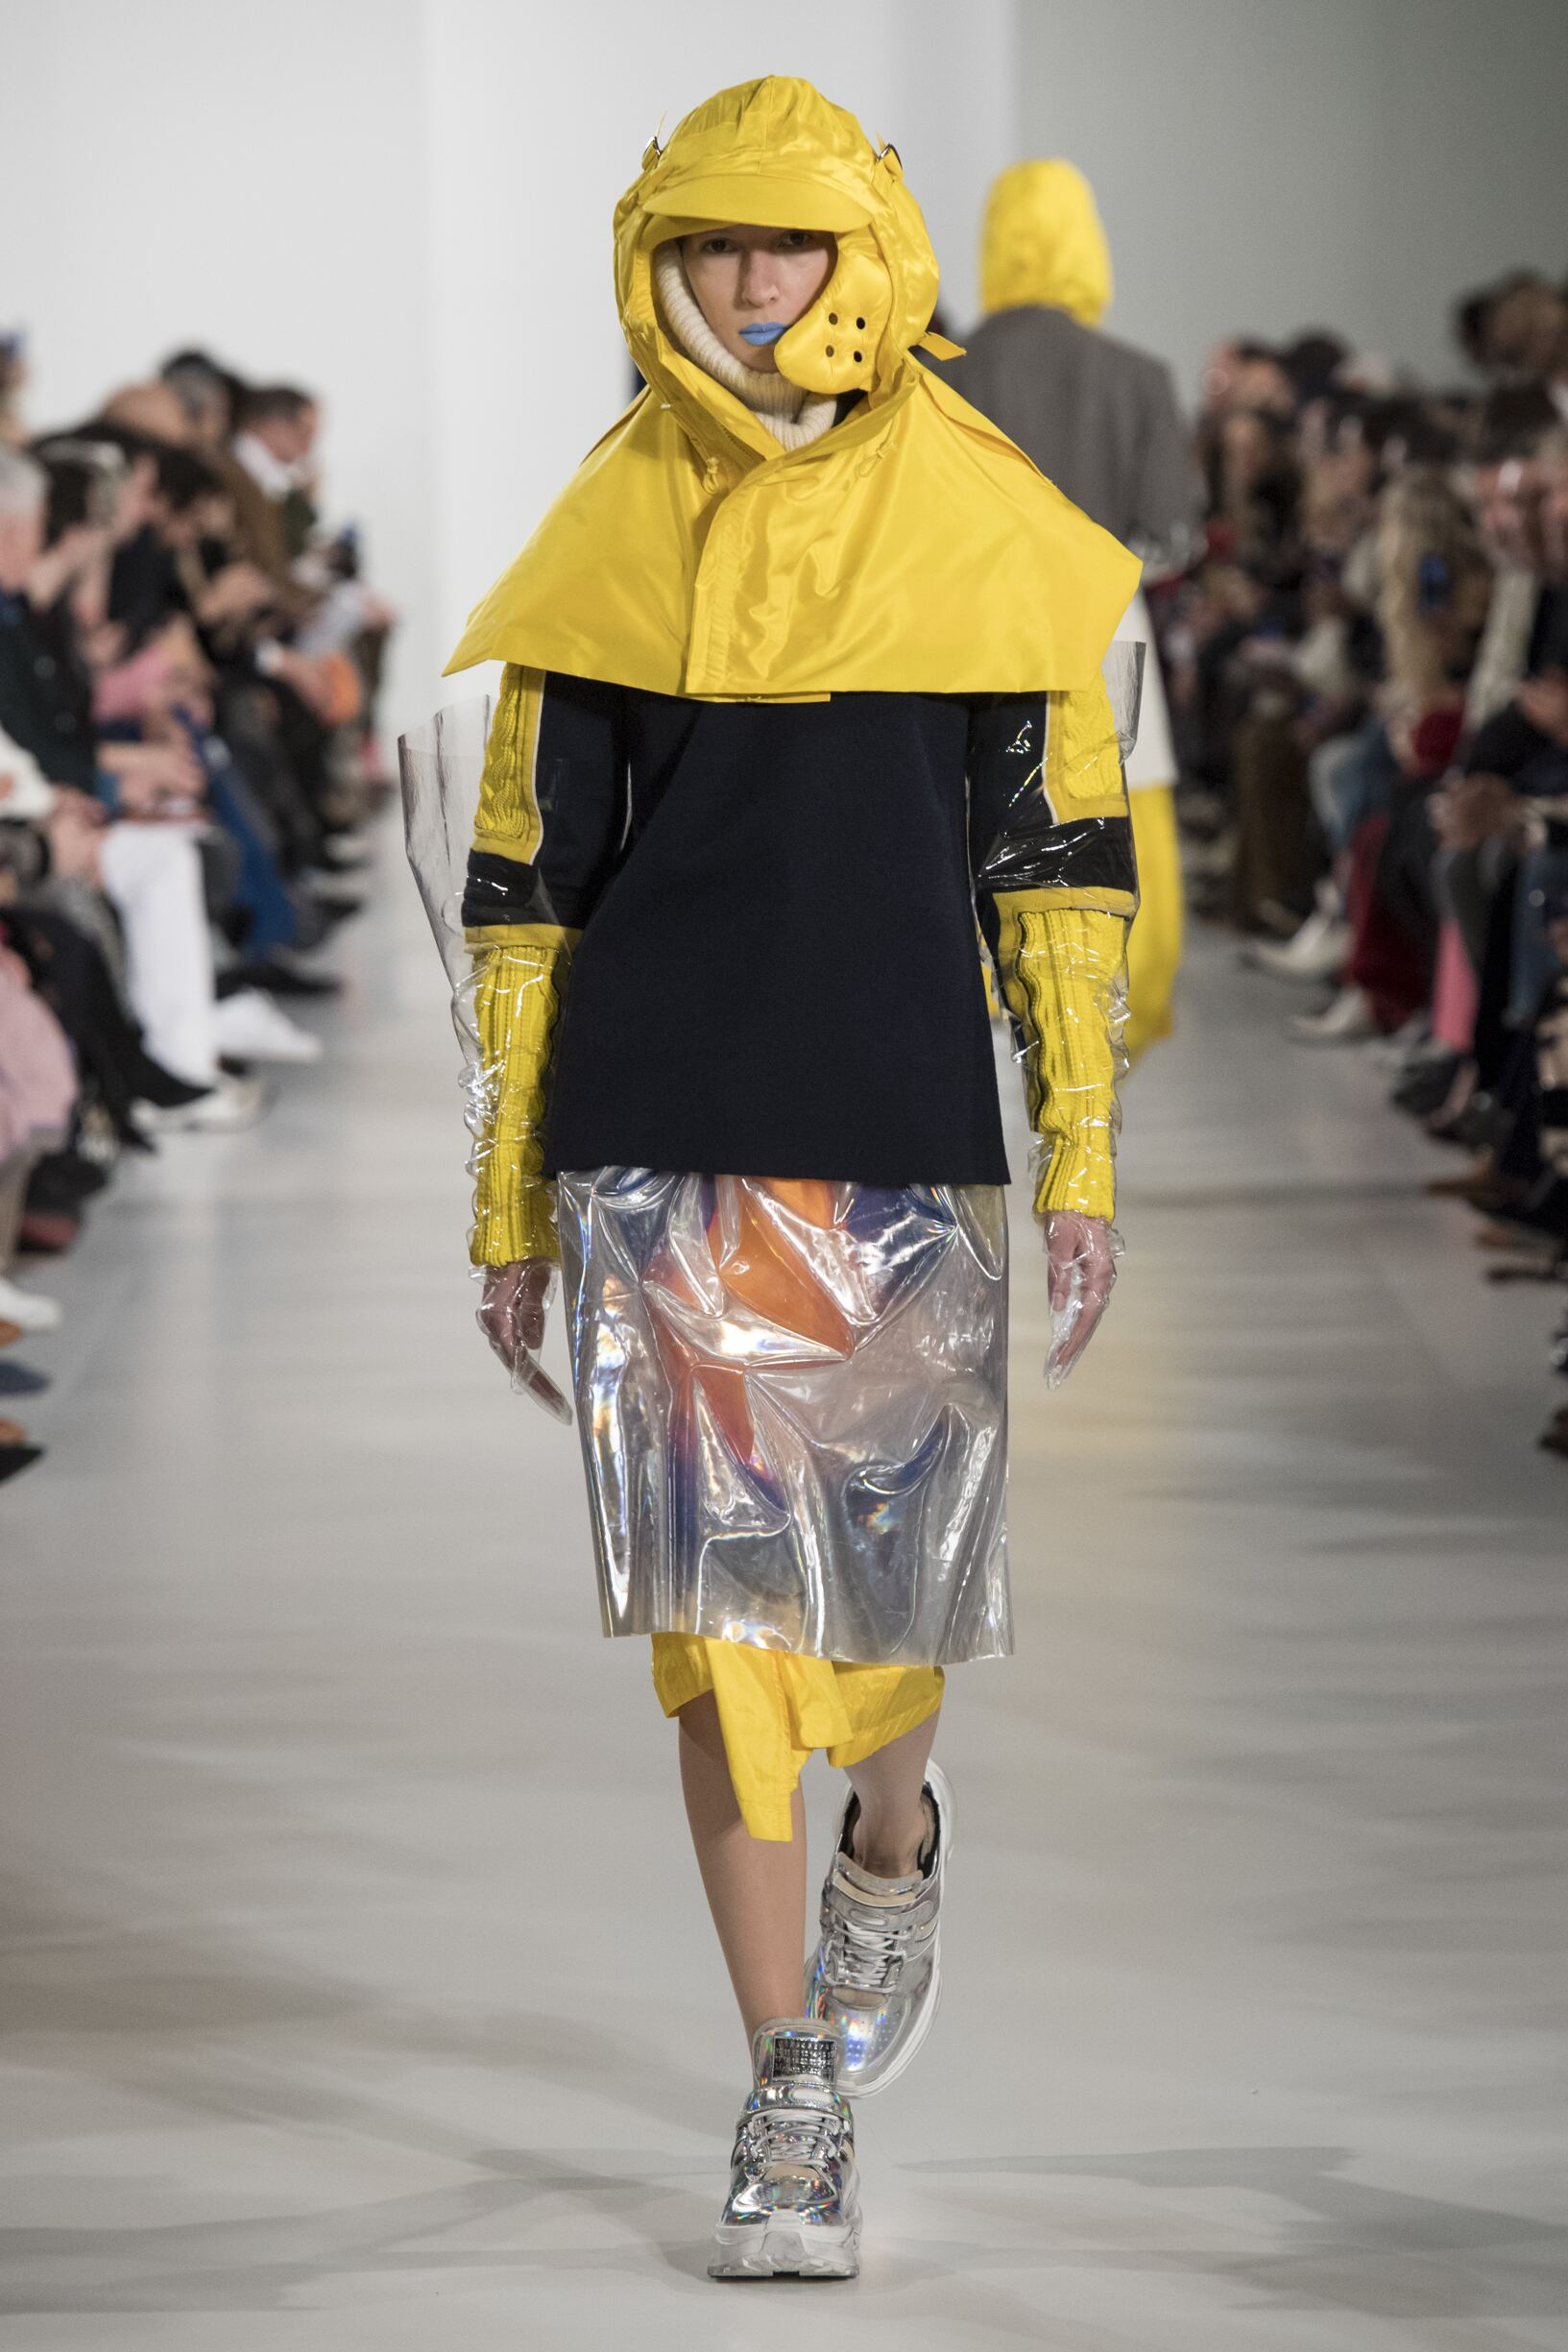 Catwalk Maison Margiela Woman Fashion Show Winter 2018